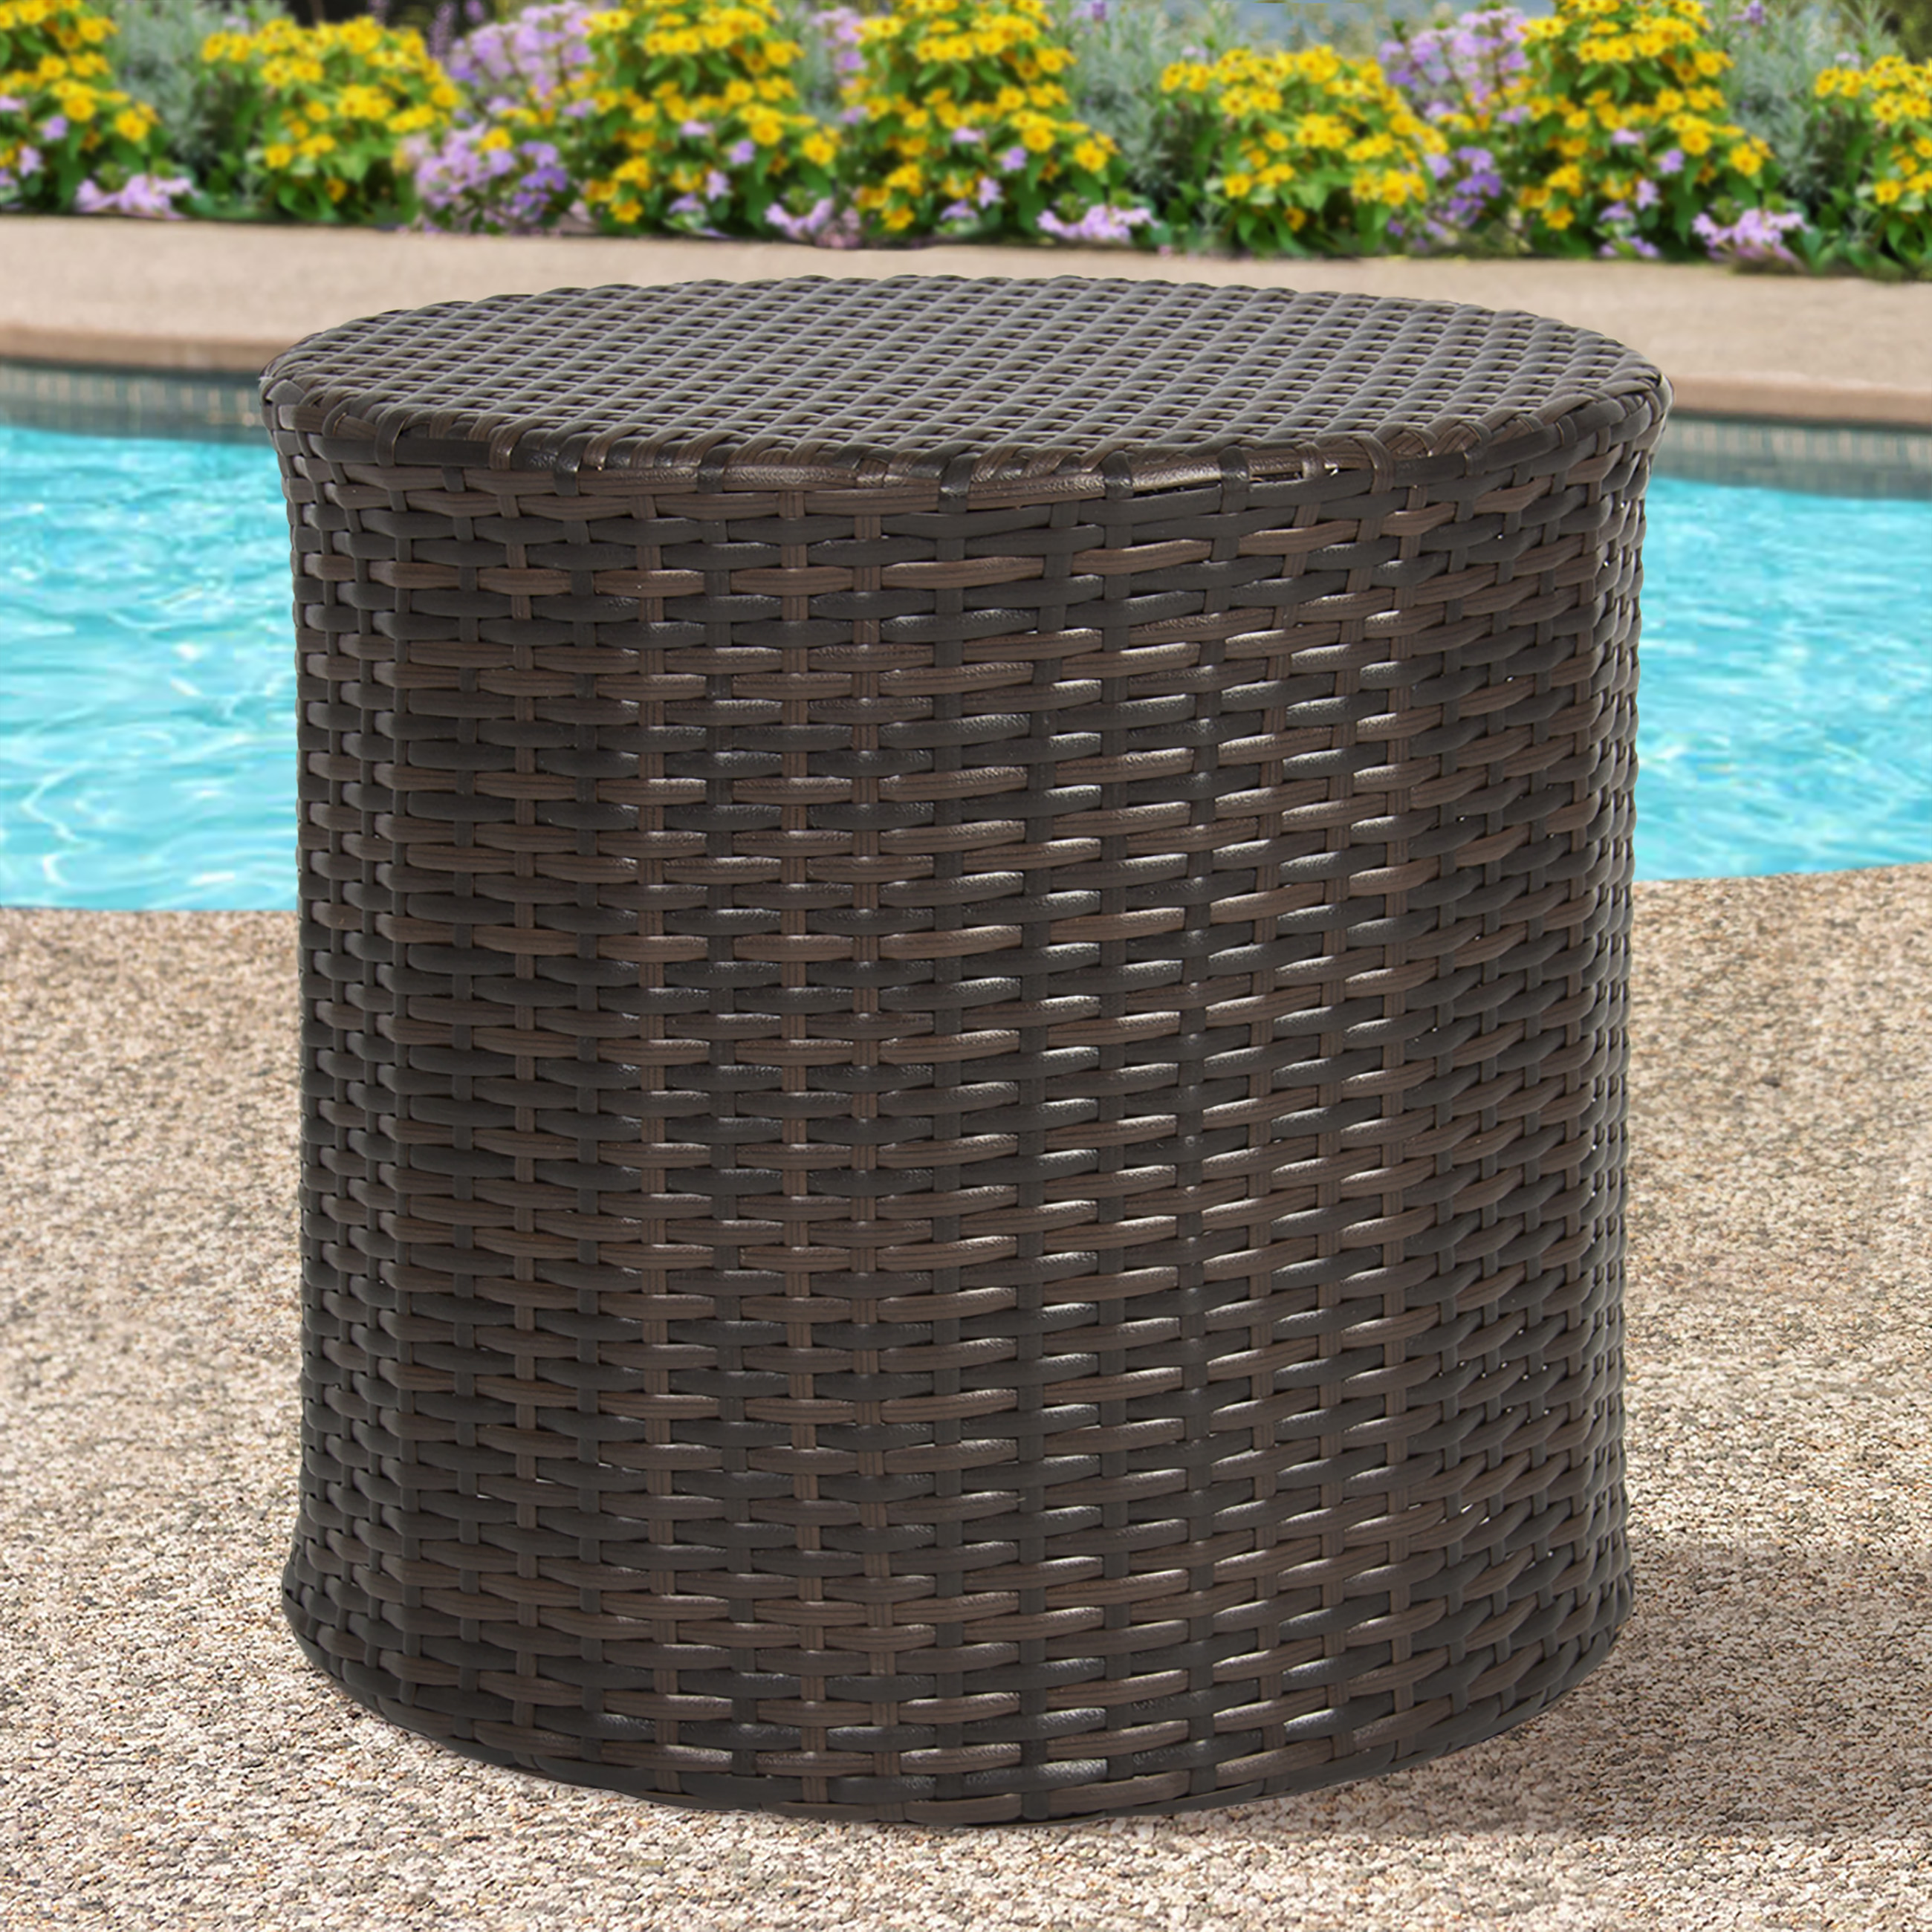 Best Choice Products Outdoor Wicker Rattan Barrel Side Table Patio  Furniture Garden Backyard Pool   Walmart.com Part 81